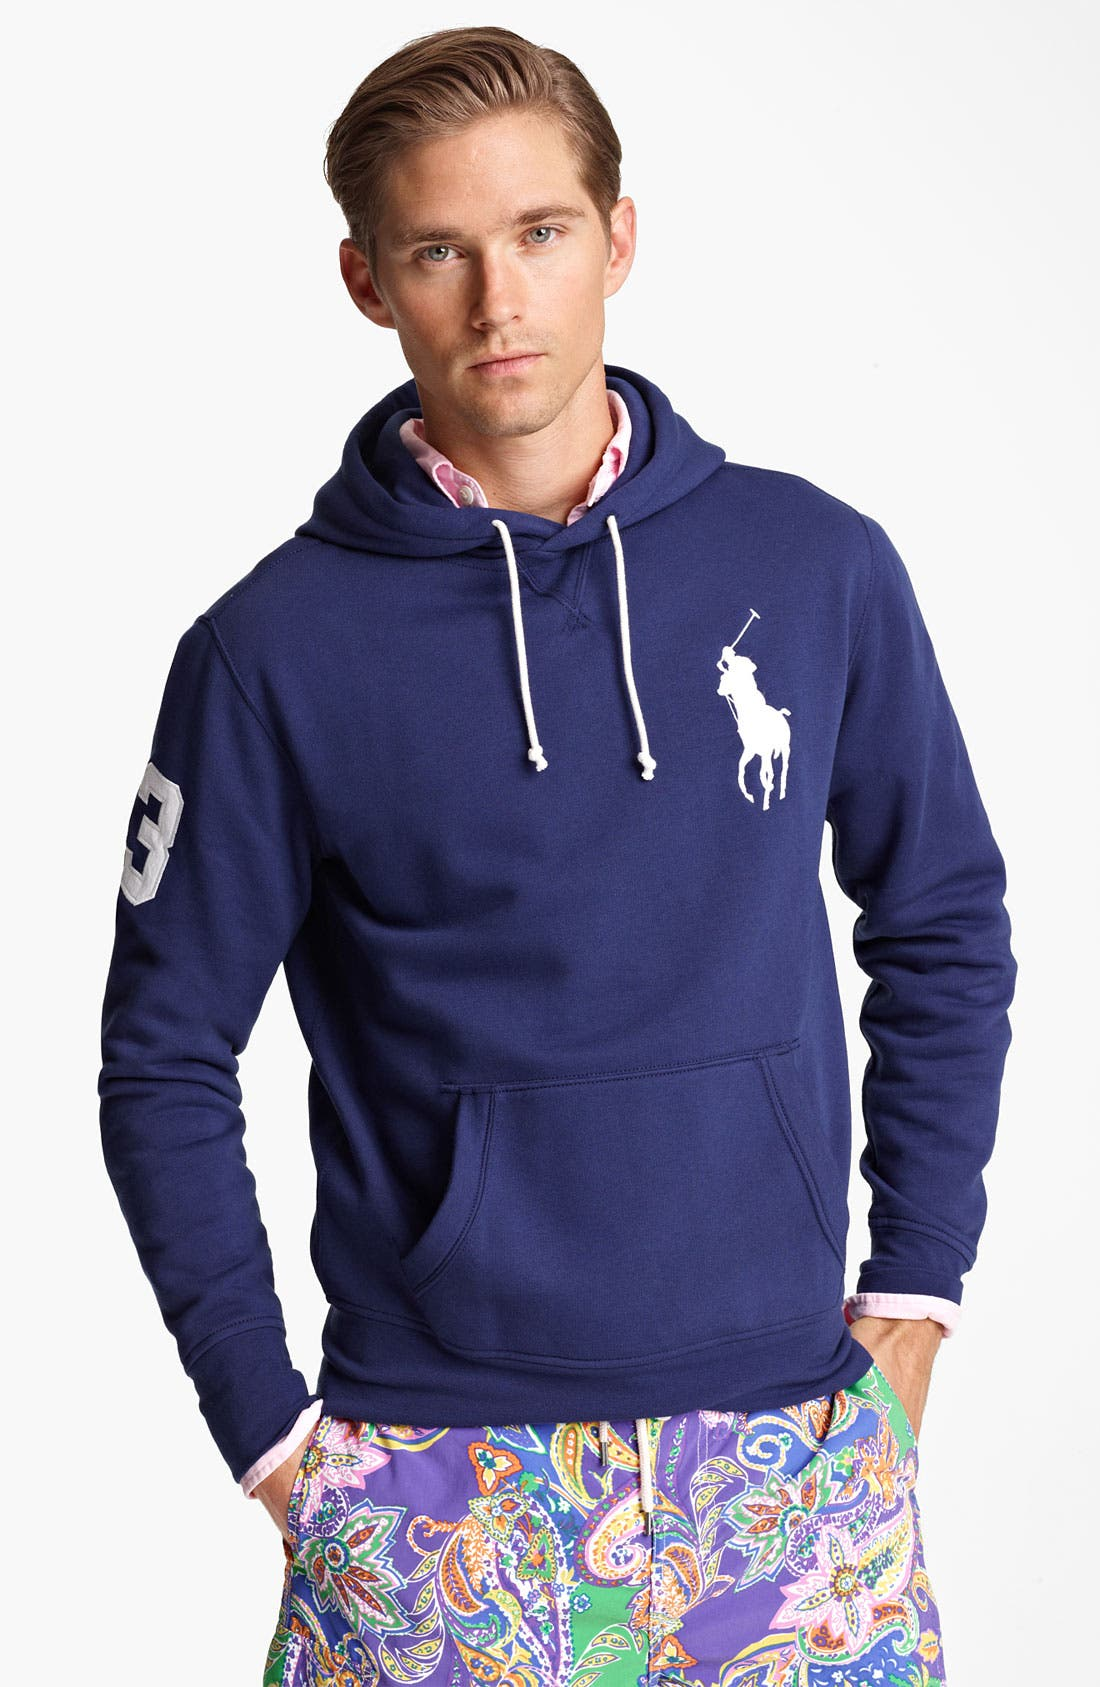 Alternate Image 1 Selected - Polo Ralph Lauren Fleece Hoodie